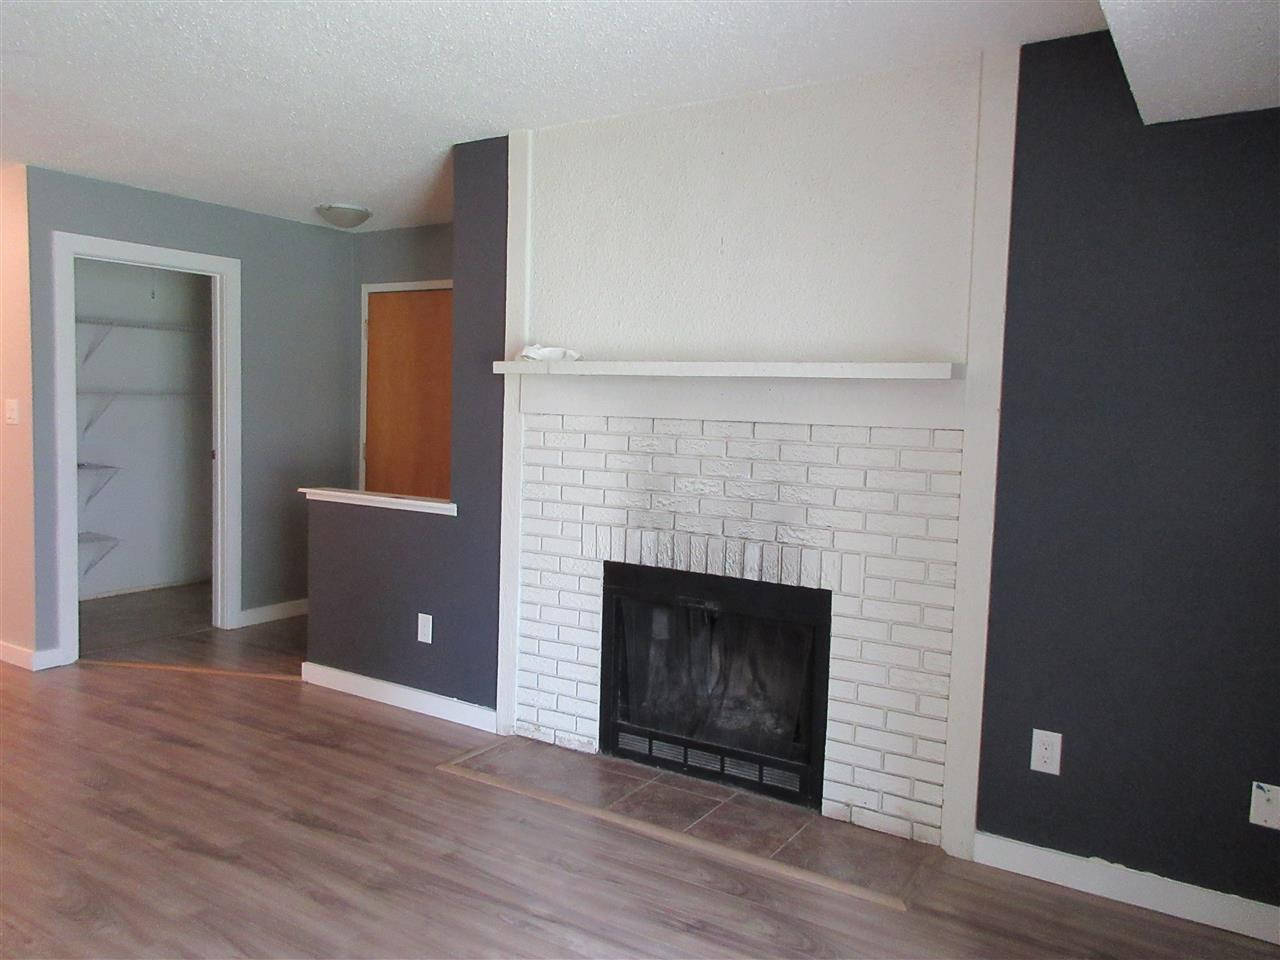 Photo 9: 103 51 AKINS Drive: St. Albert Condo for sale : MLS® # E4060963